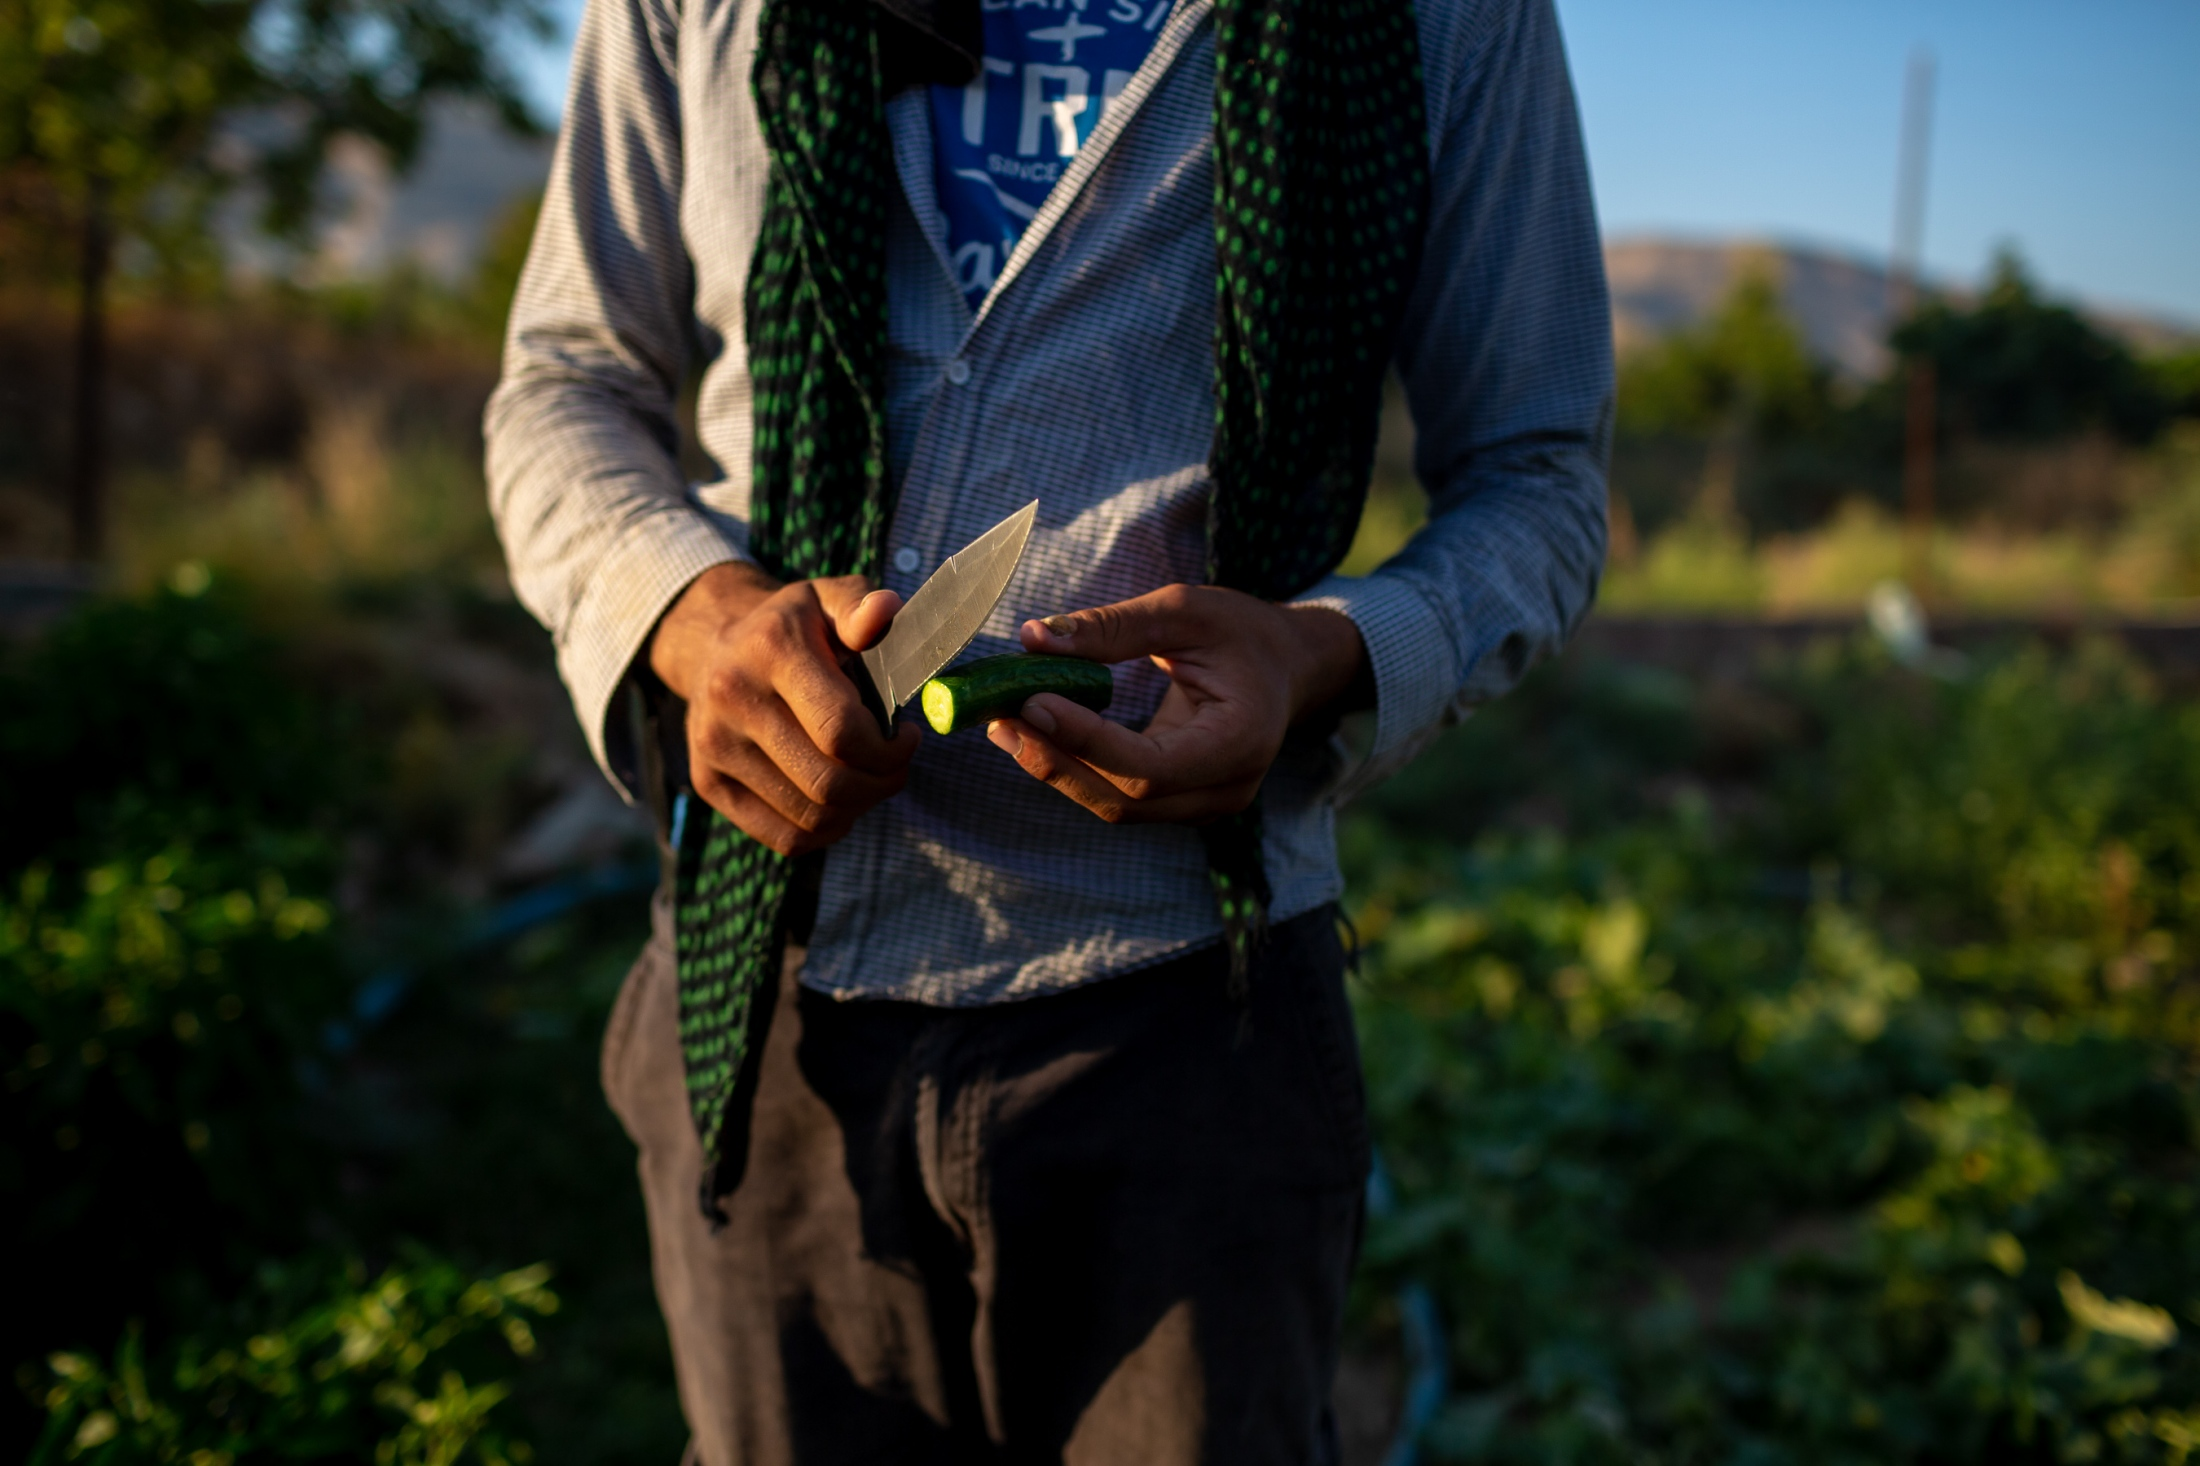 A farmer shows of a cucumber form his garden. Residents across the Tigris River from Hasankeyf wait to be displaced. While their village is not in the flood zone, they expect the flood waters will cause the surrounding structures to be unstable and so they will have to move.